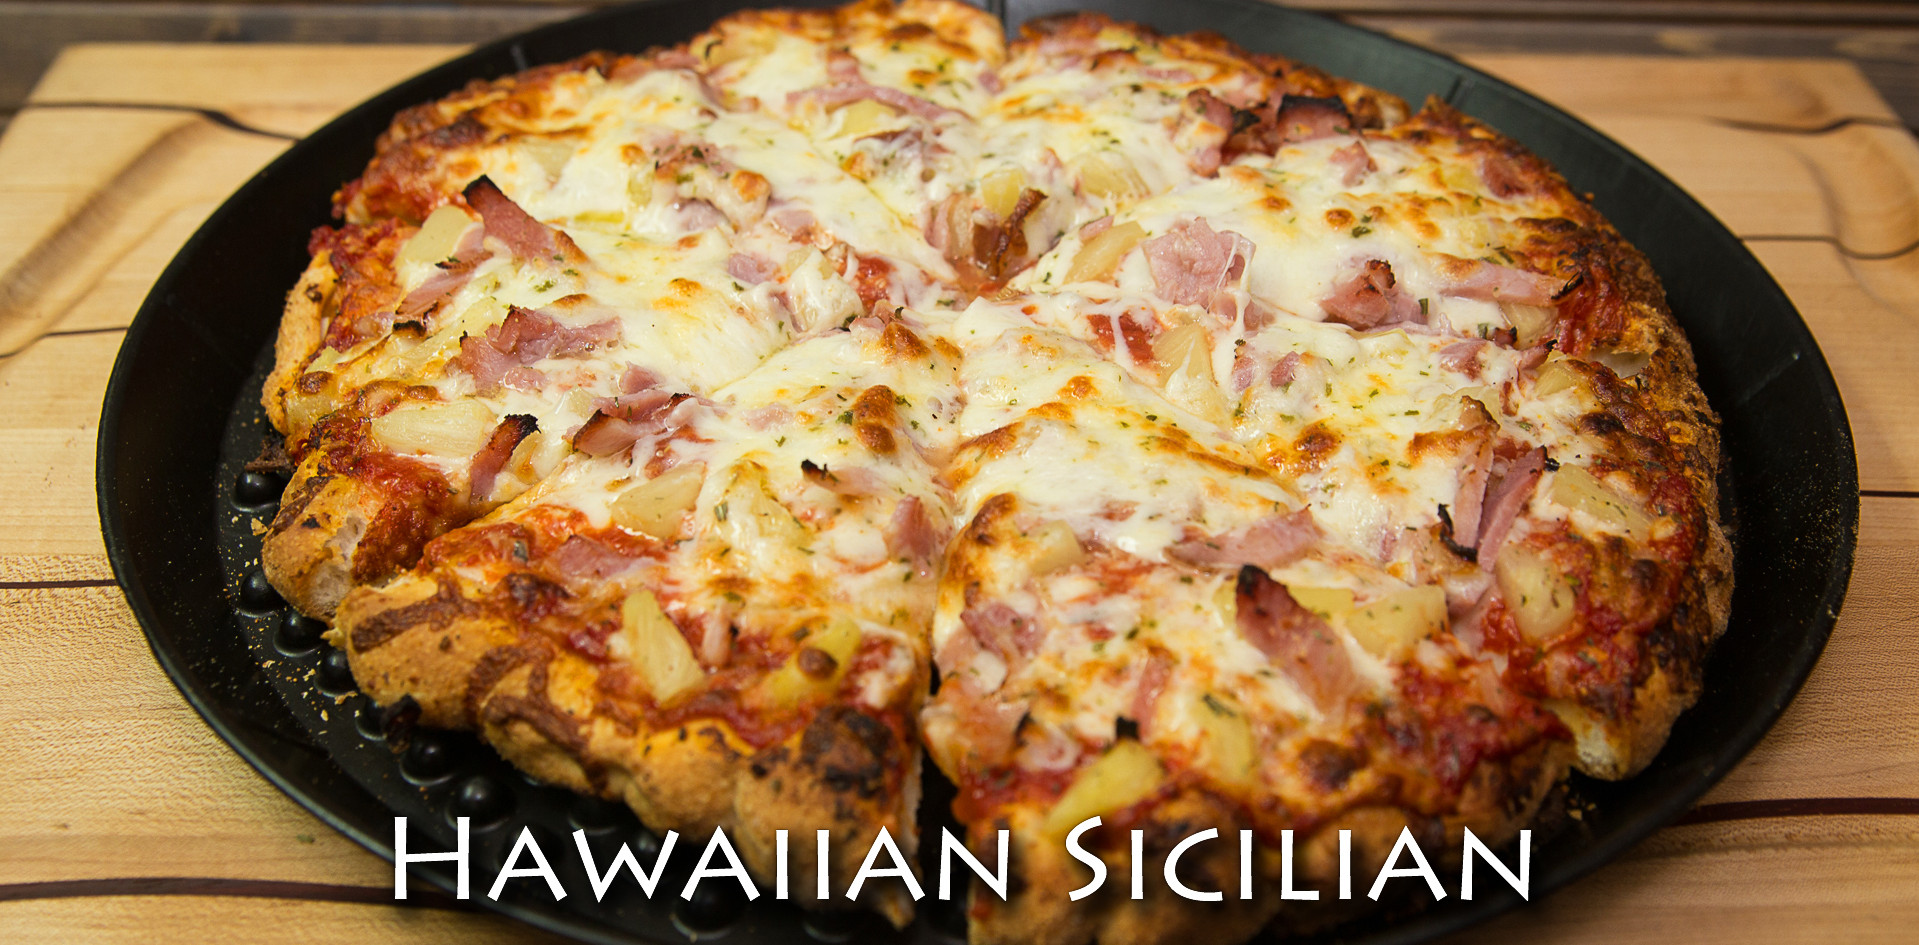 Hawaiian Sicilian Pizza